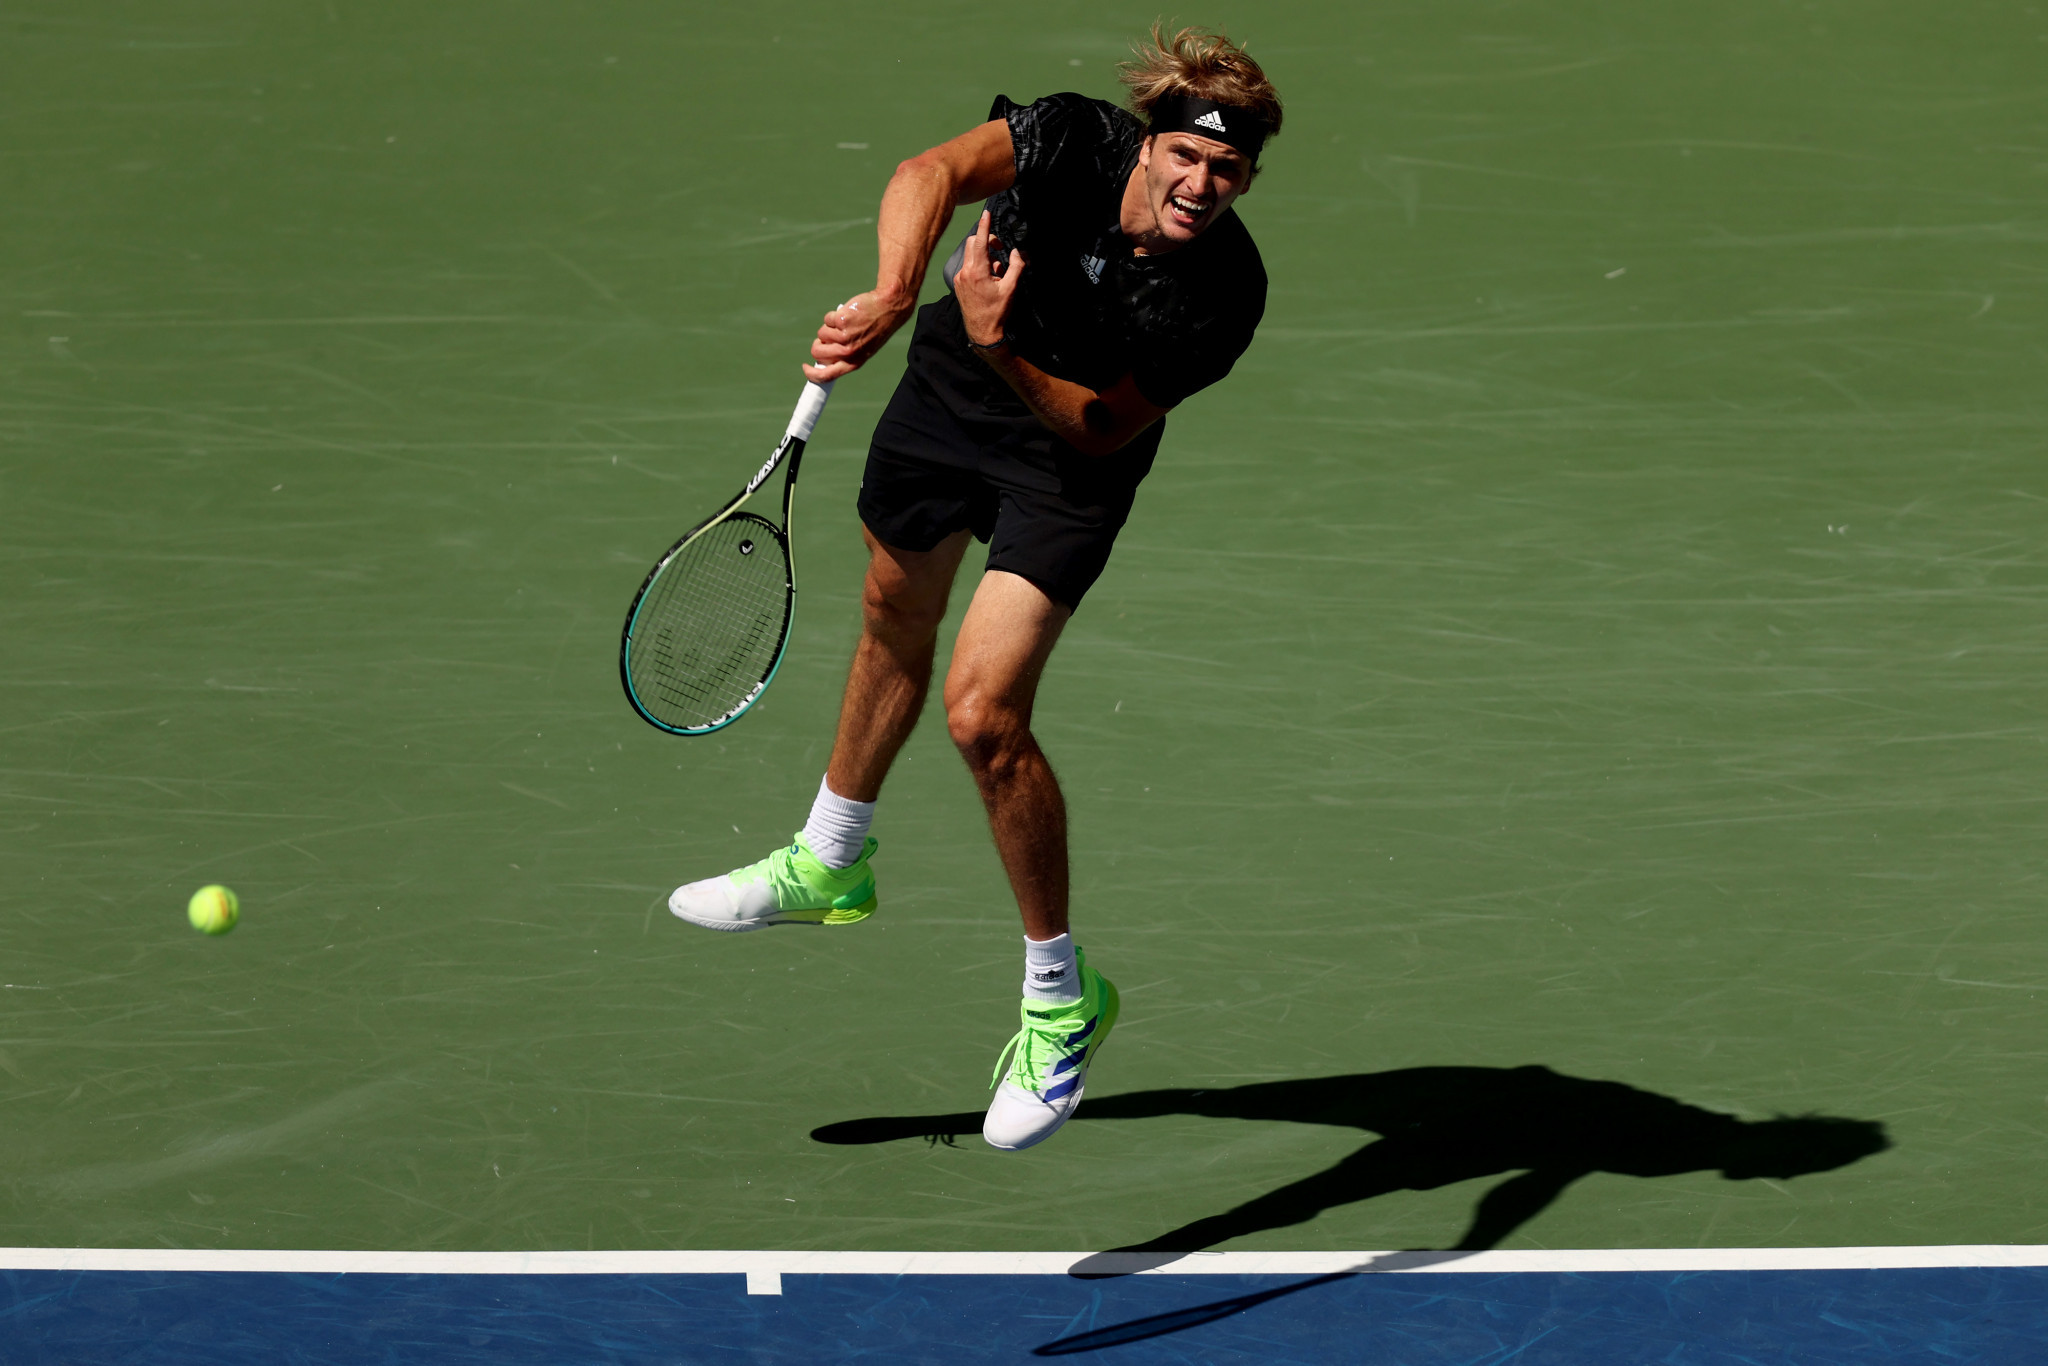 Olympic champion Alexander Zverev eased into the quarter-finals ©Getty Images